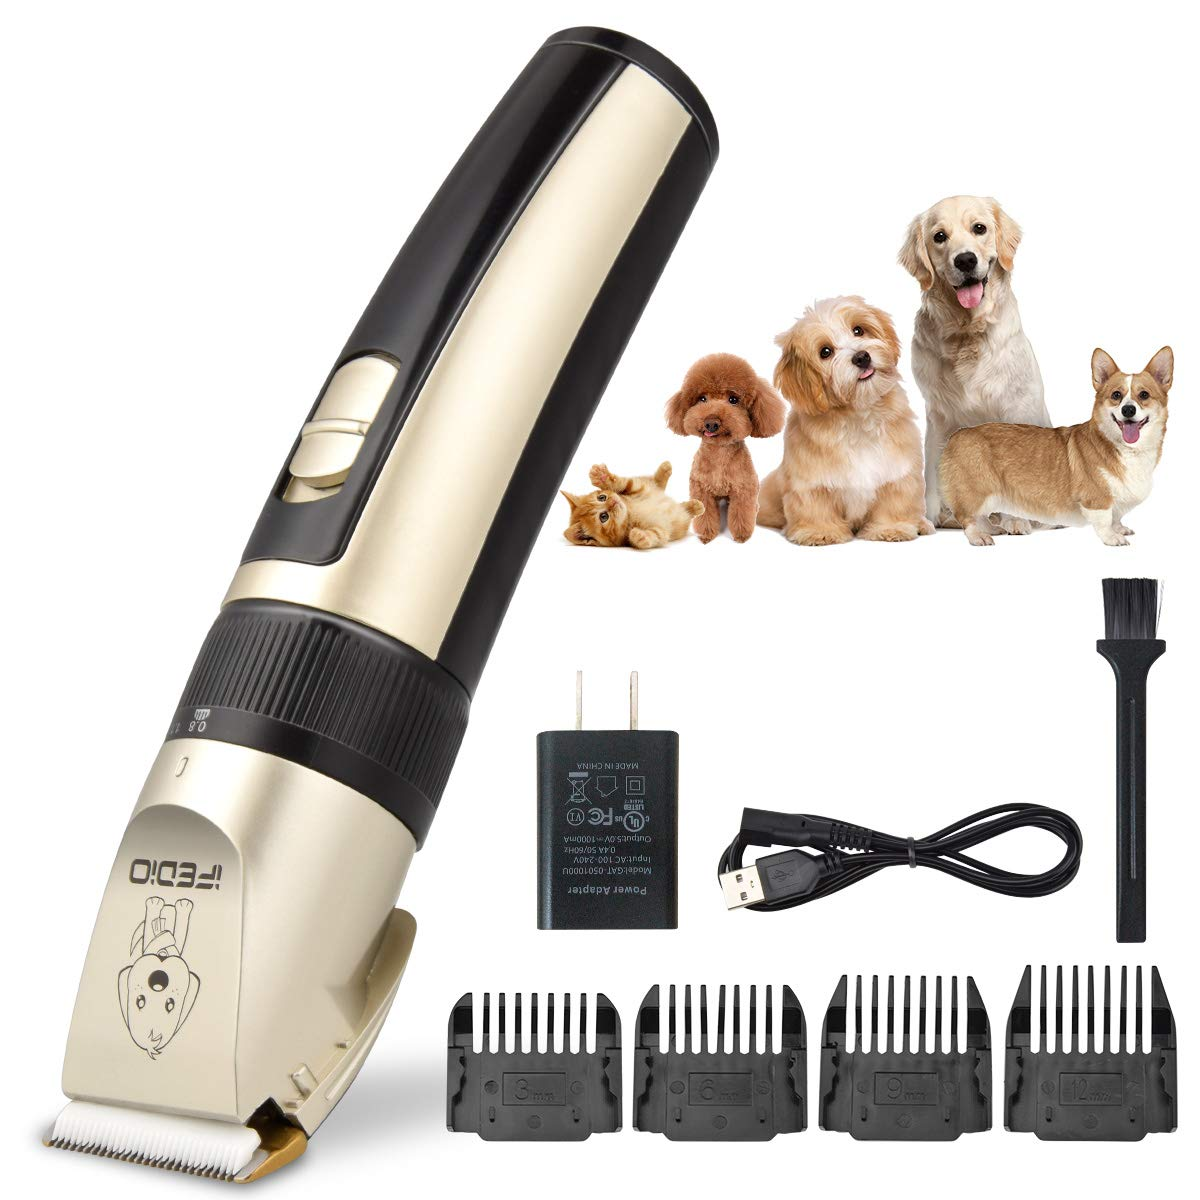 TXPY Professional Dog Clippers Rechargeable Dog Grooming Kit Cordless Pet Grooming Clippers Low Noise Dog Grooming Clippers Pet Clippers Suitable Dogs Cats Other Pets House Animals by TXPY